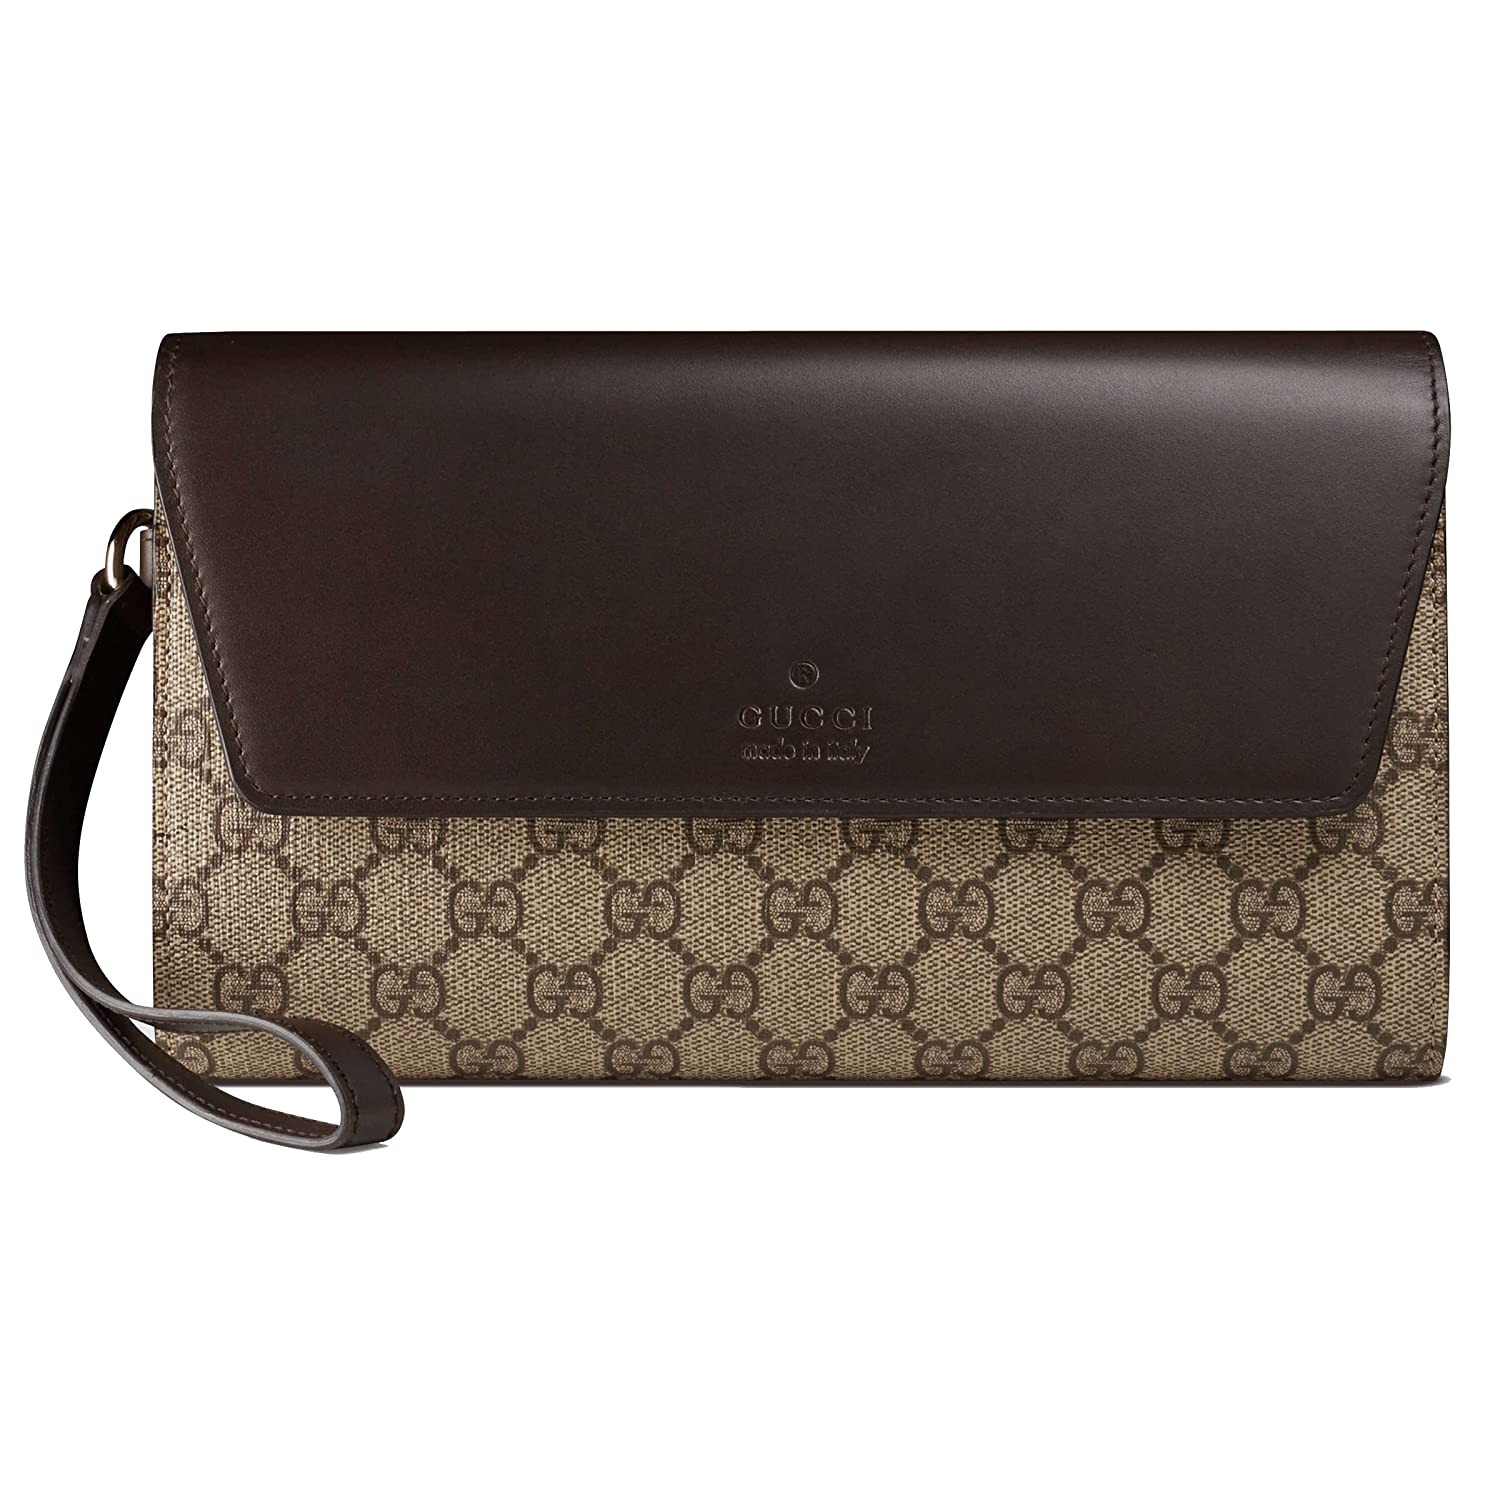 827ec6b3dd71c3 Gucci GG Supreme Canvas Beige/Brown Leather Travel Document Case Wallet  386852 9643: Amazon.ca: Clothing & Accessories